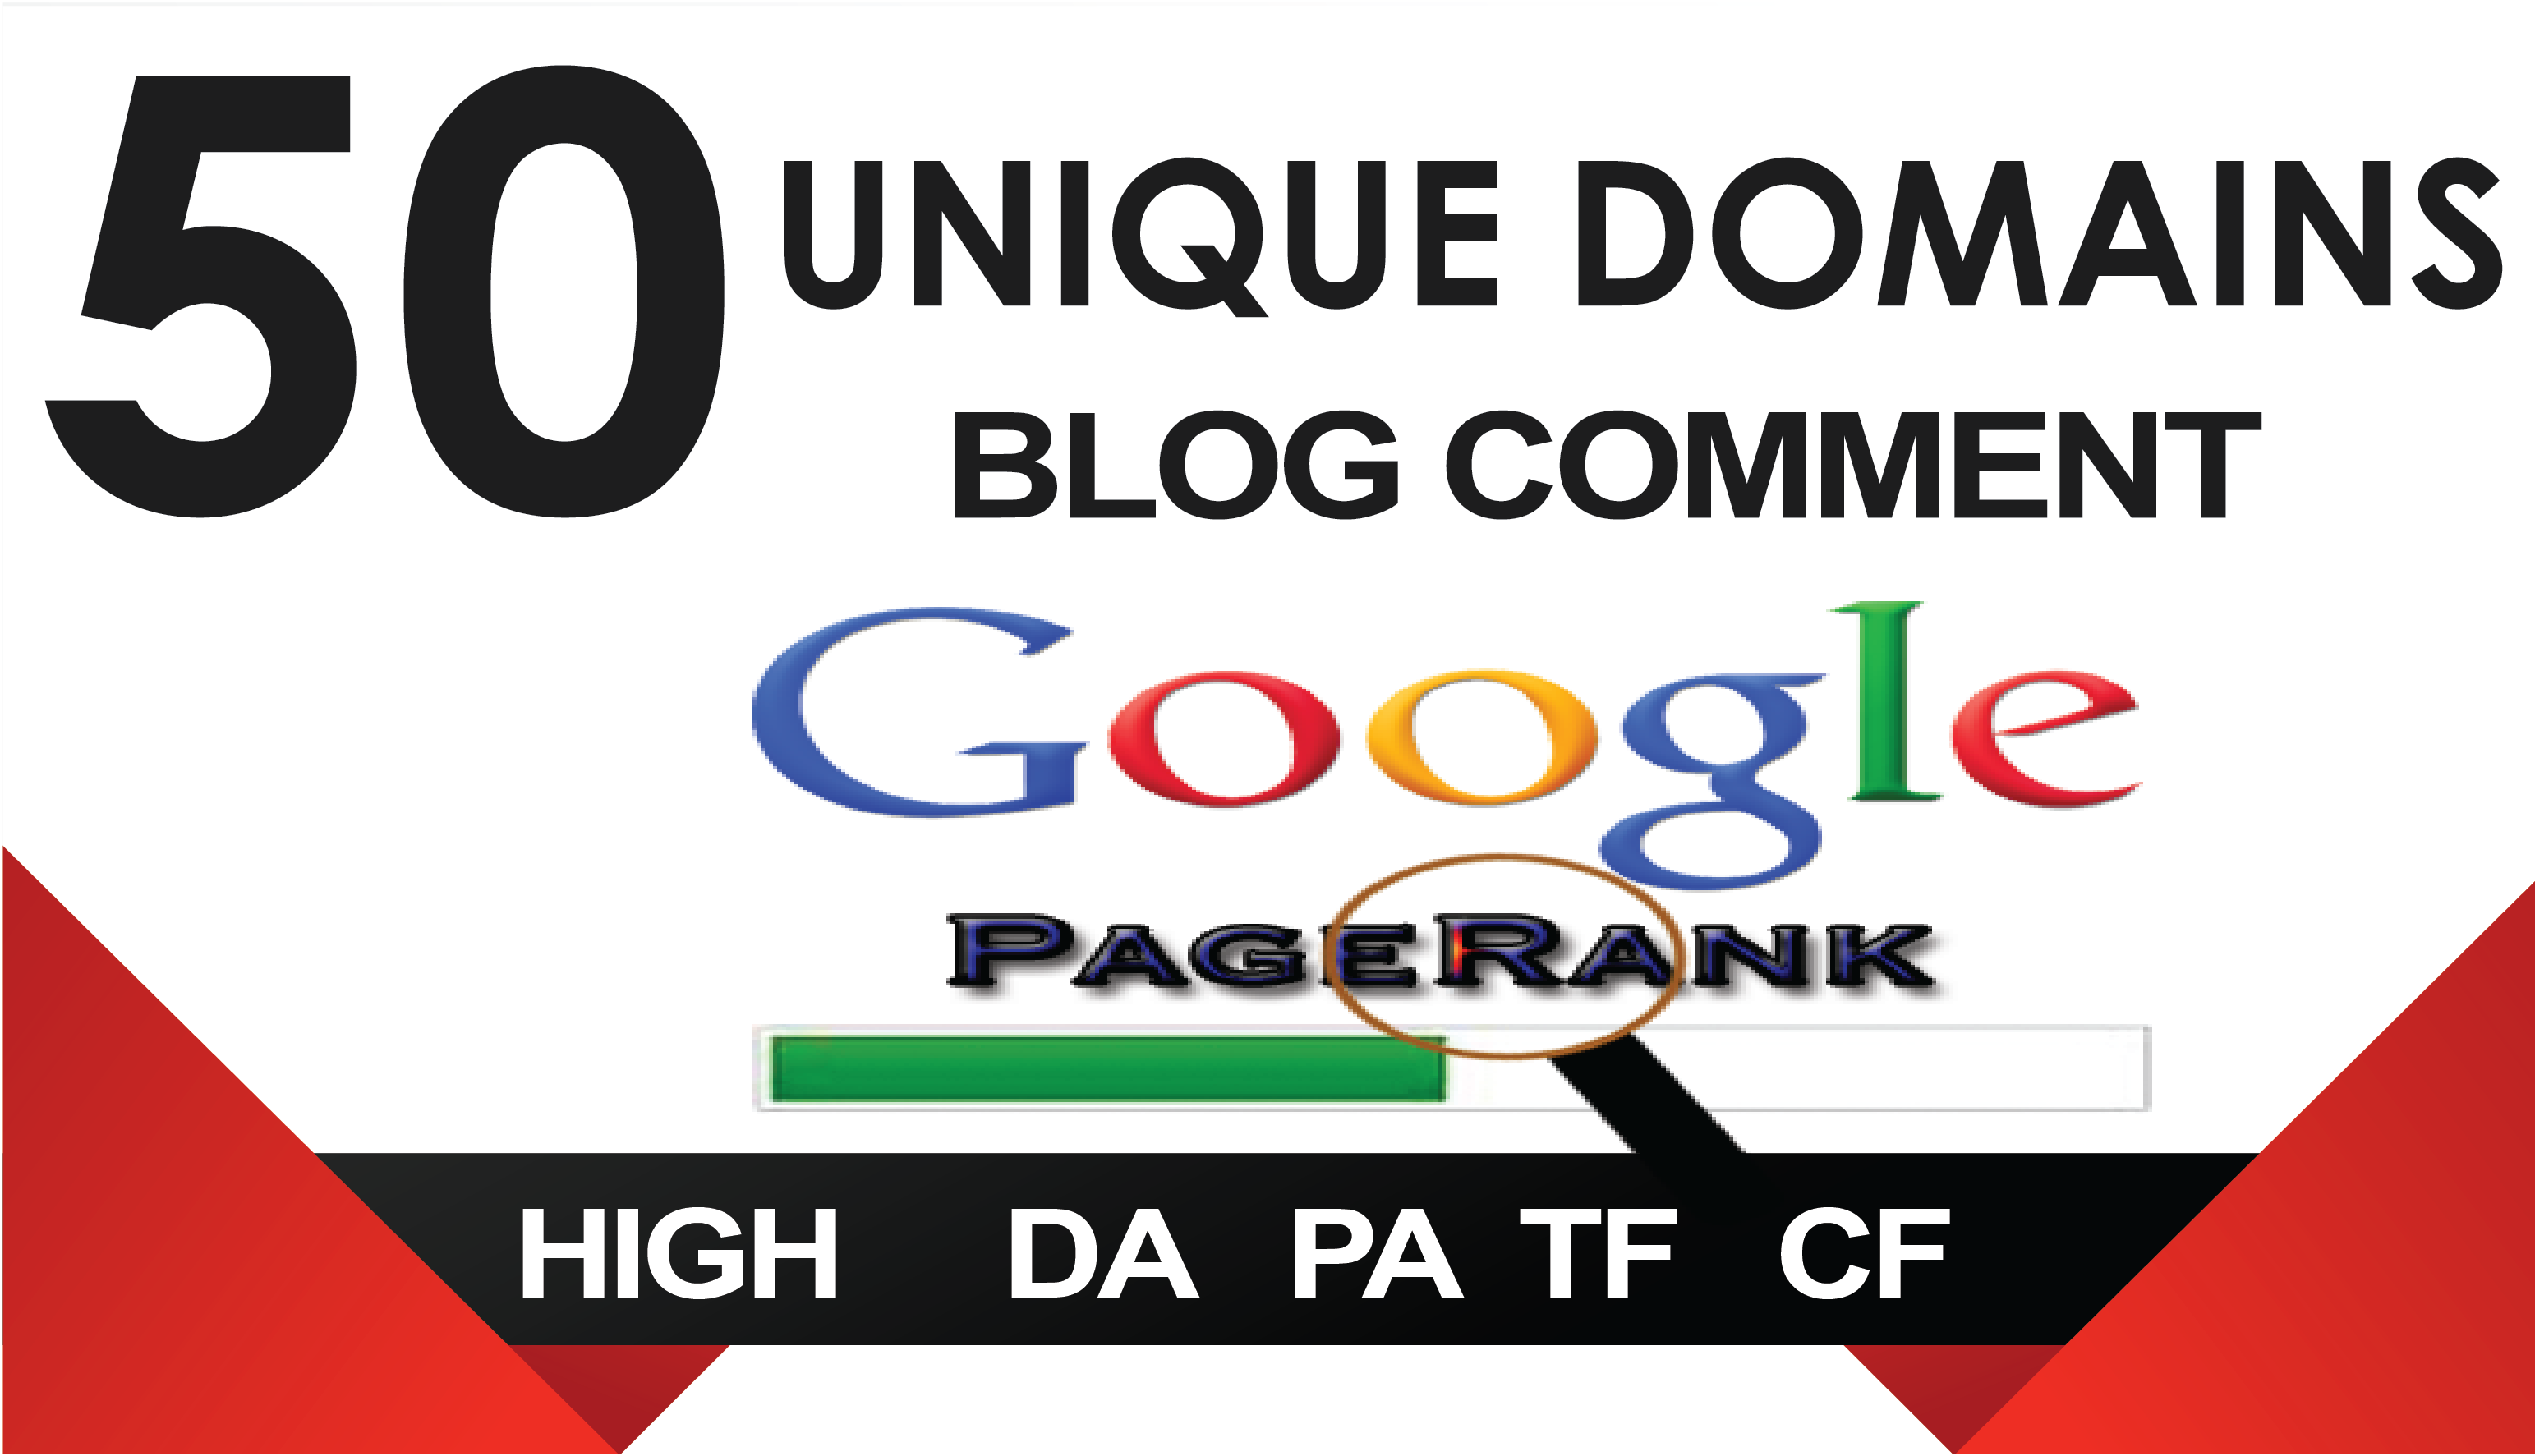 I will 50 unique domains blog comments backlinks High DA, PA, TF, CF